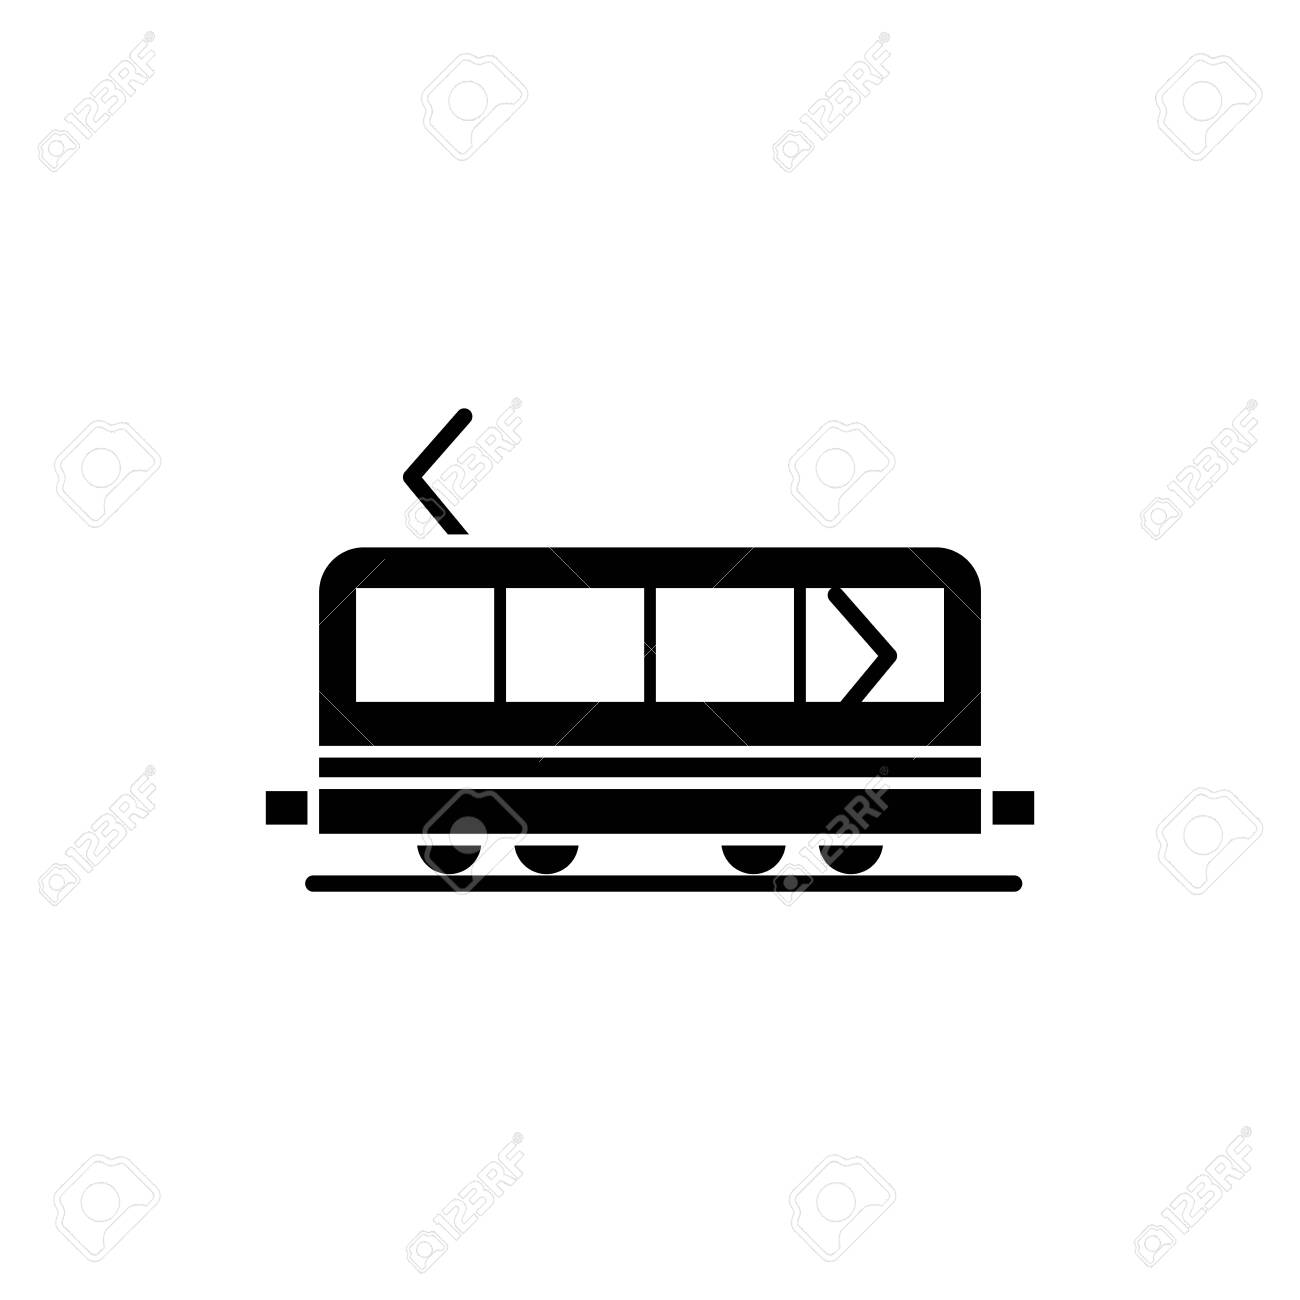 Illustration Vector graphic of train icon. Fit for transportation, subway, railway etc. - 152948115